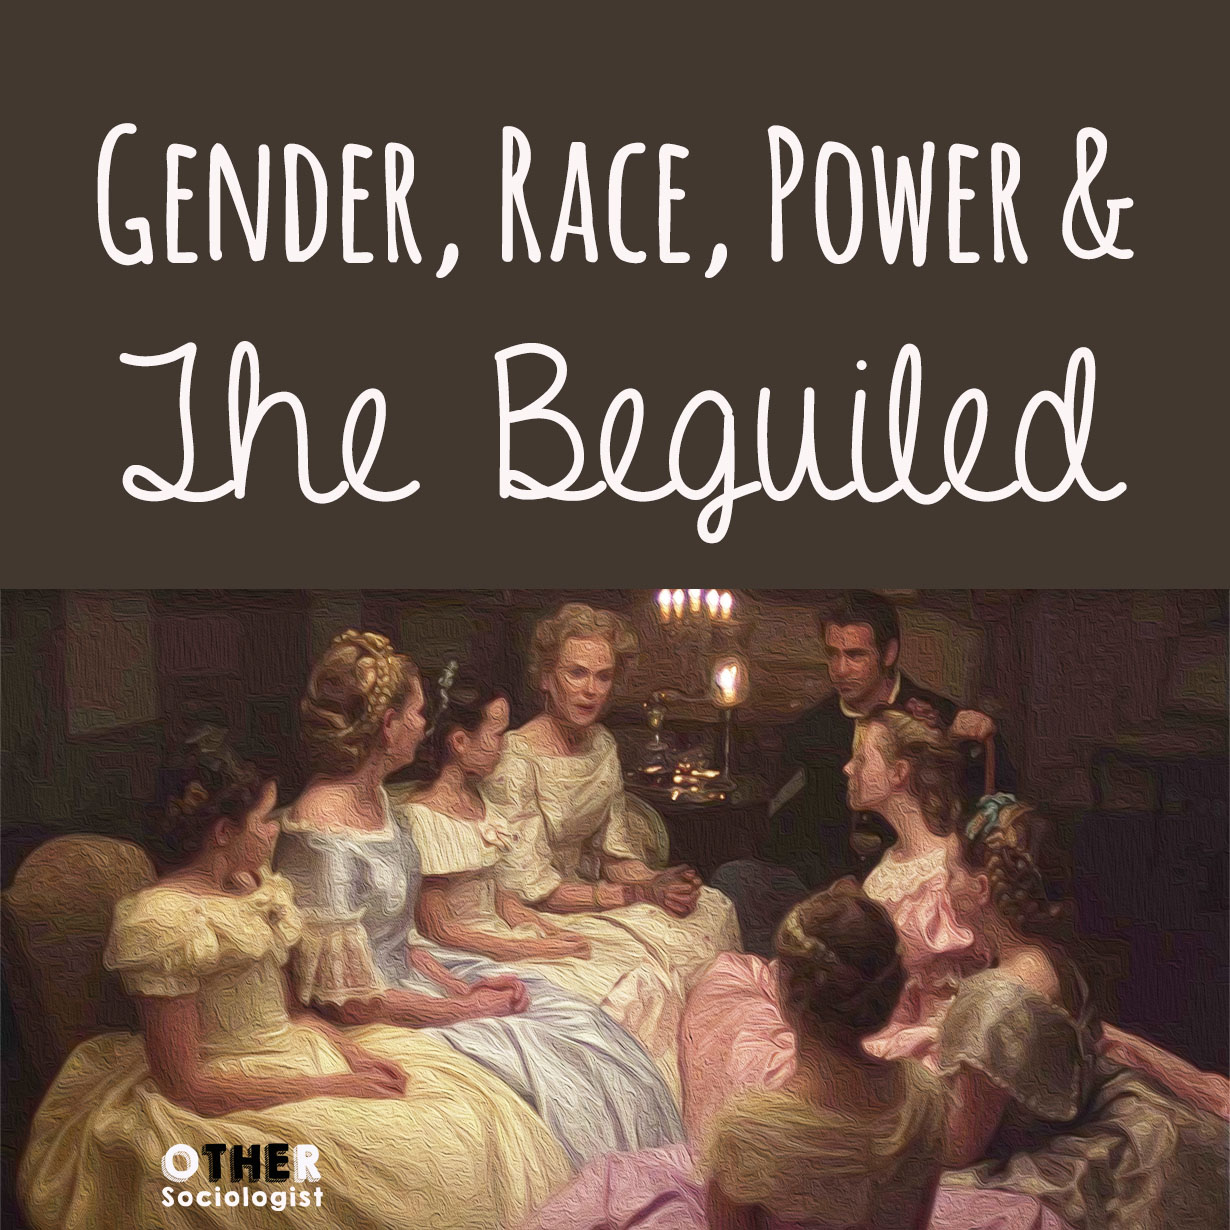 Gender, Race, Power and The Beguiled